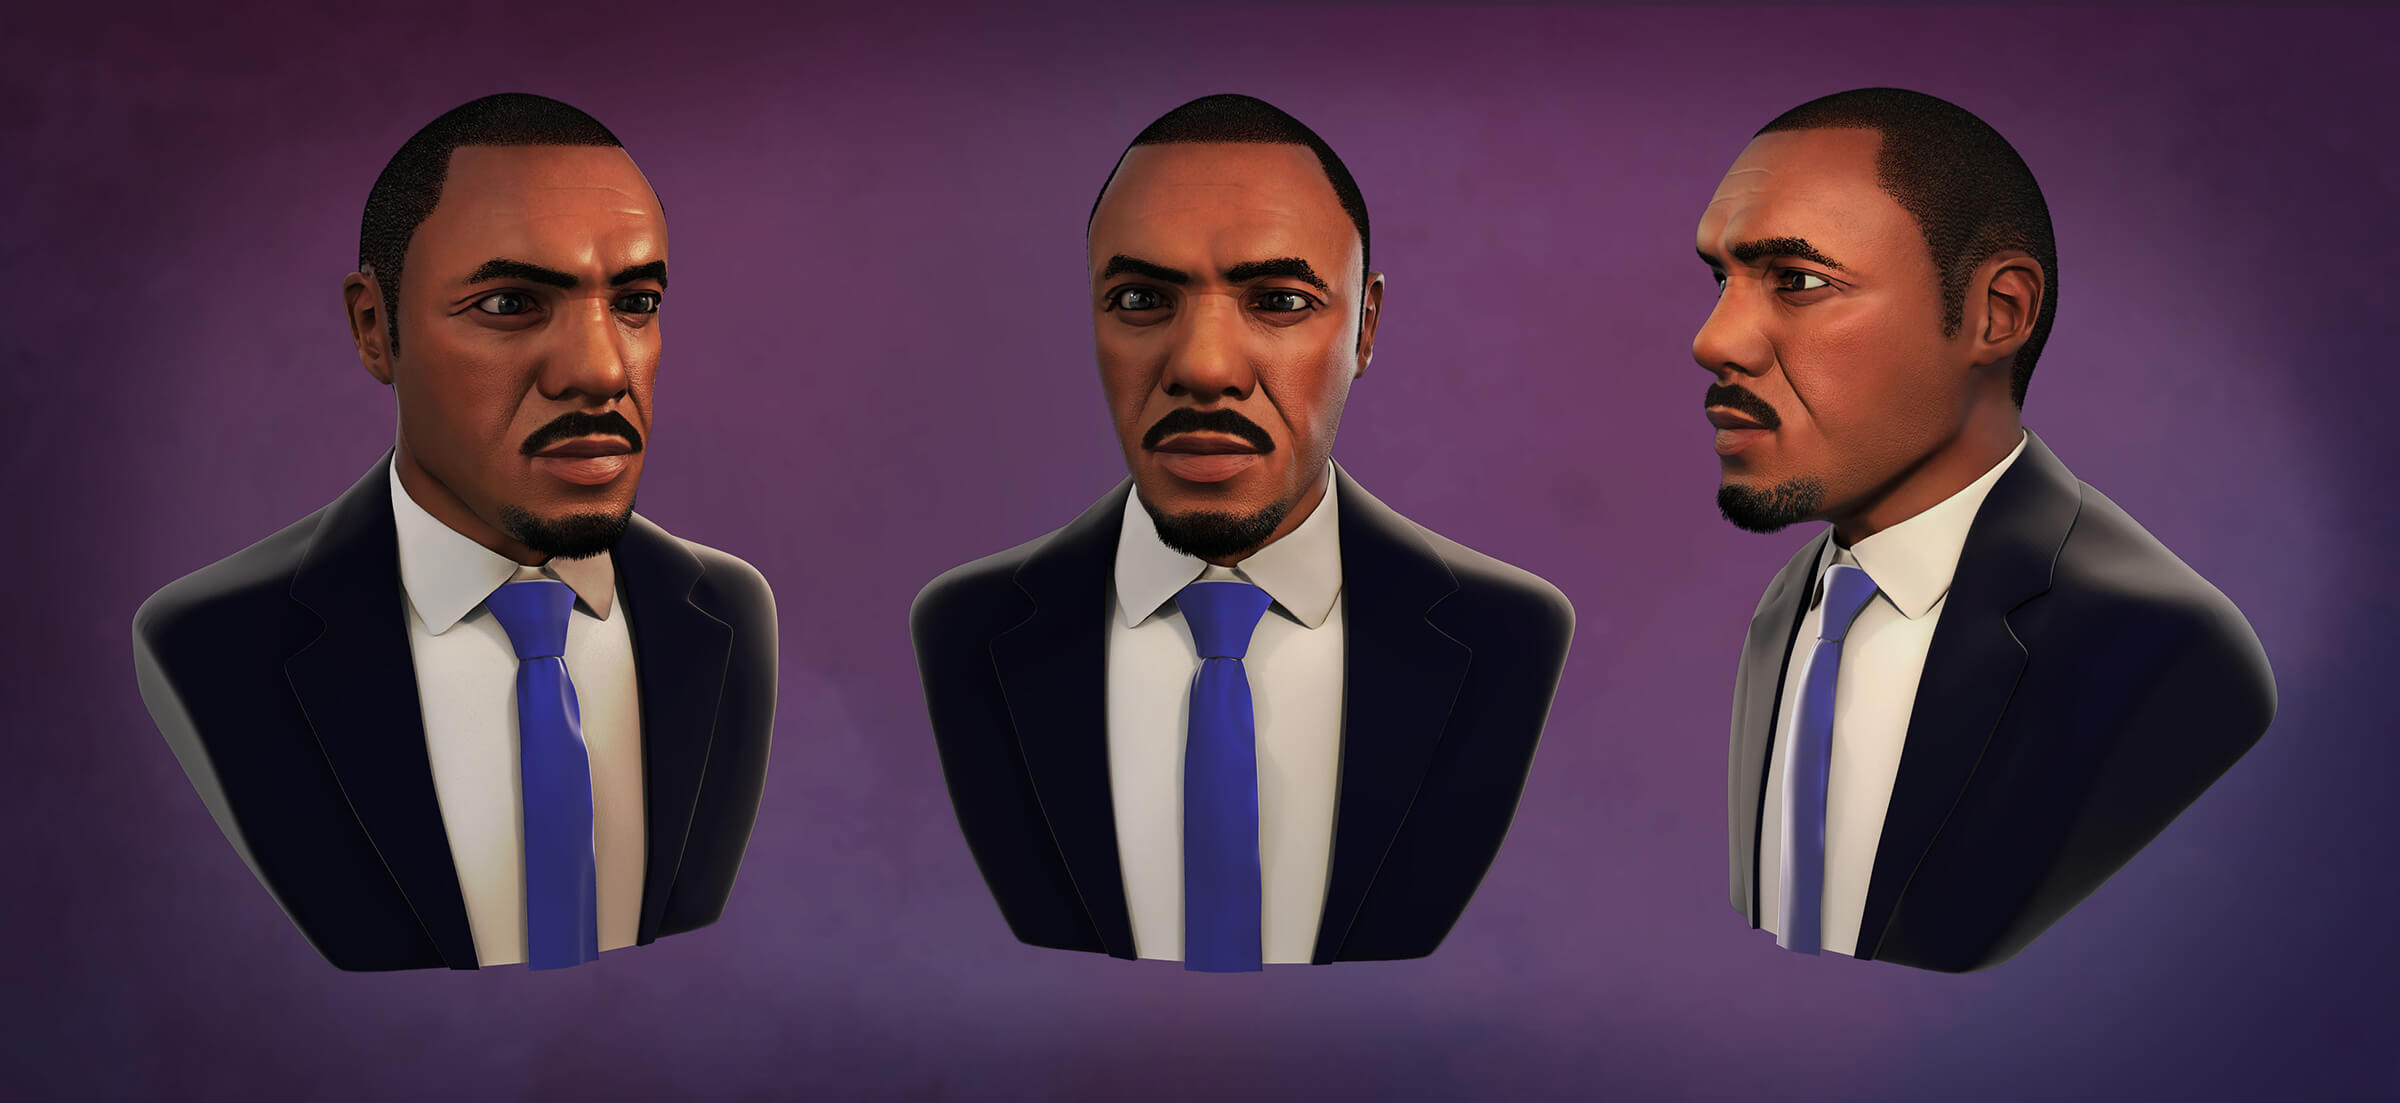 Three angles of a man wearing a jacket and tie